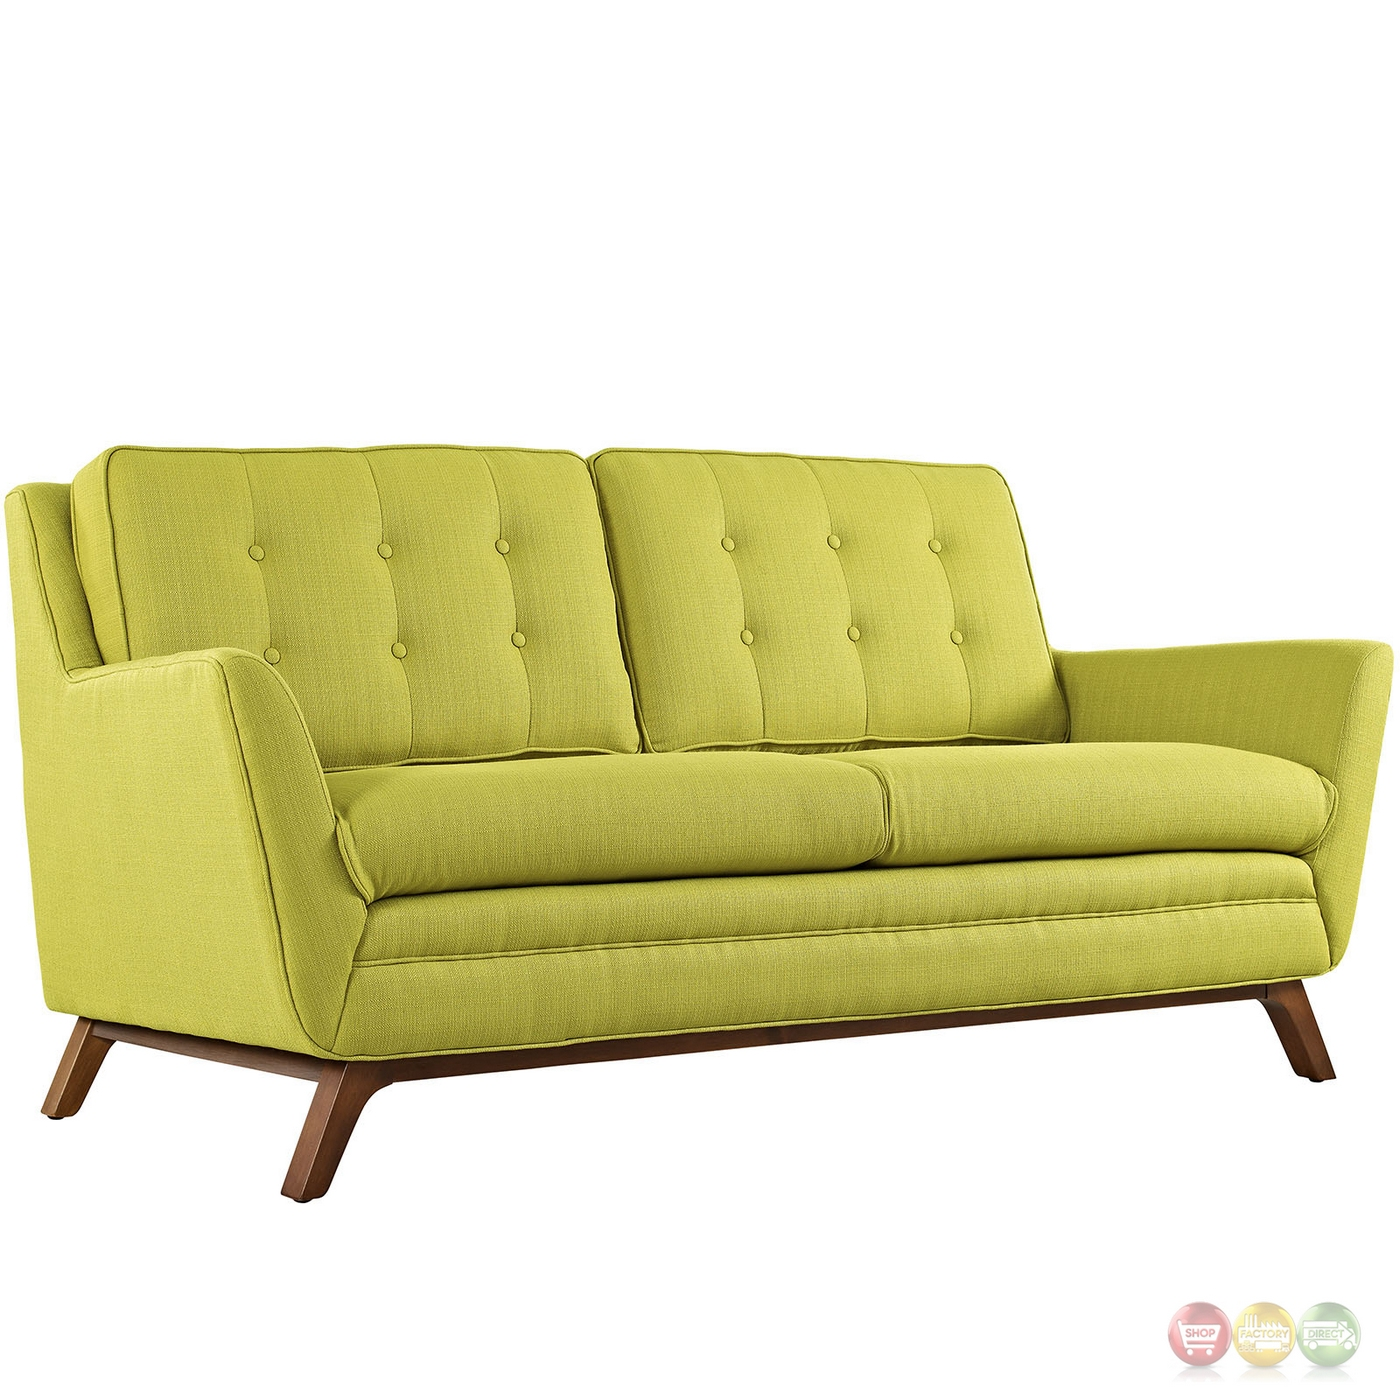 Beguile 2pc Upholstered Button Tufted Sofa Loveseat Set Wheatgrass